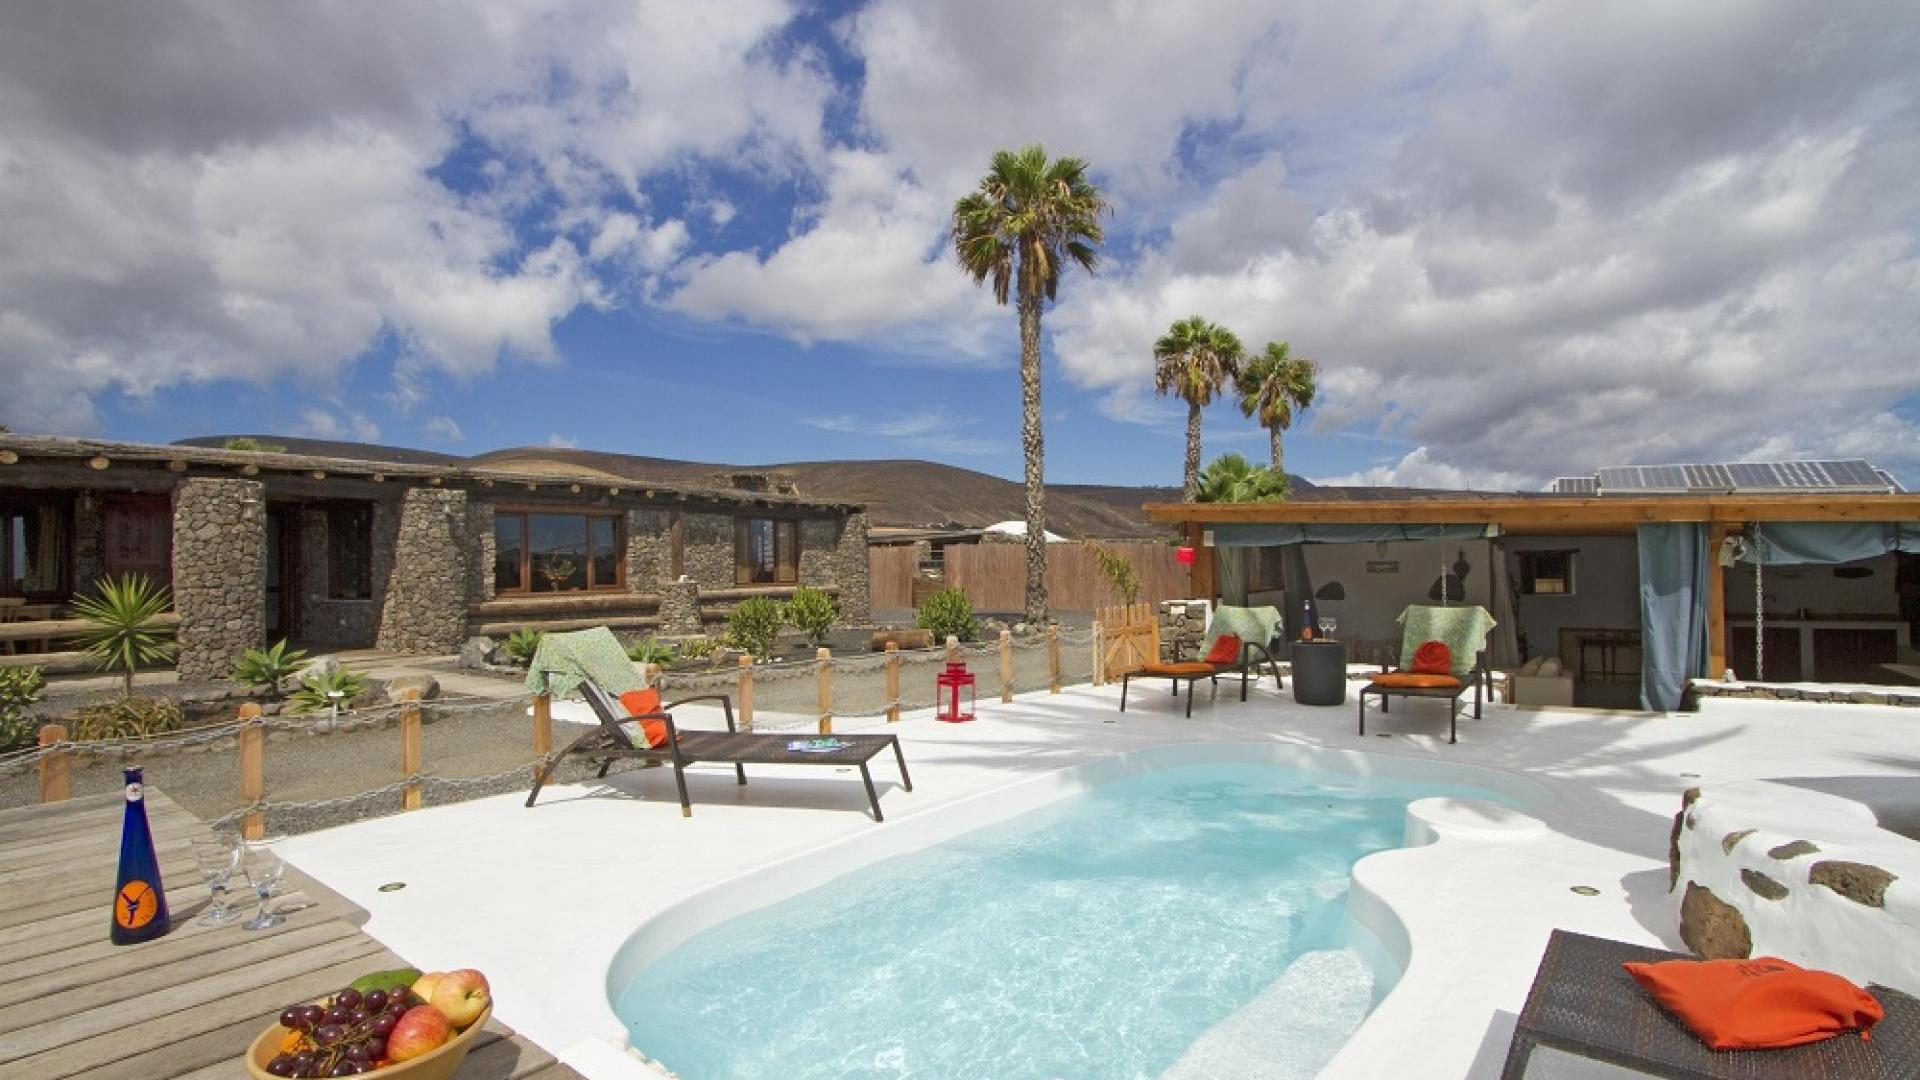 3 bedroom child-friendly luxury holiday home private pool Lanzarote